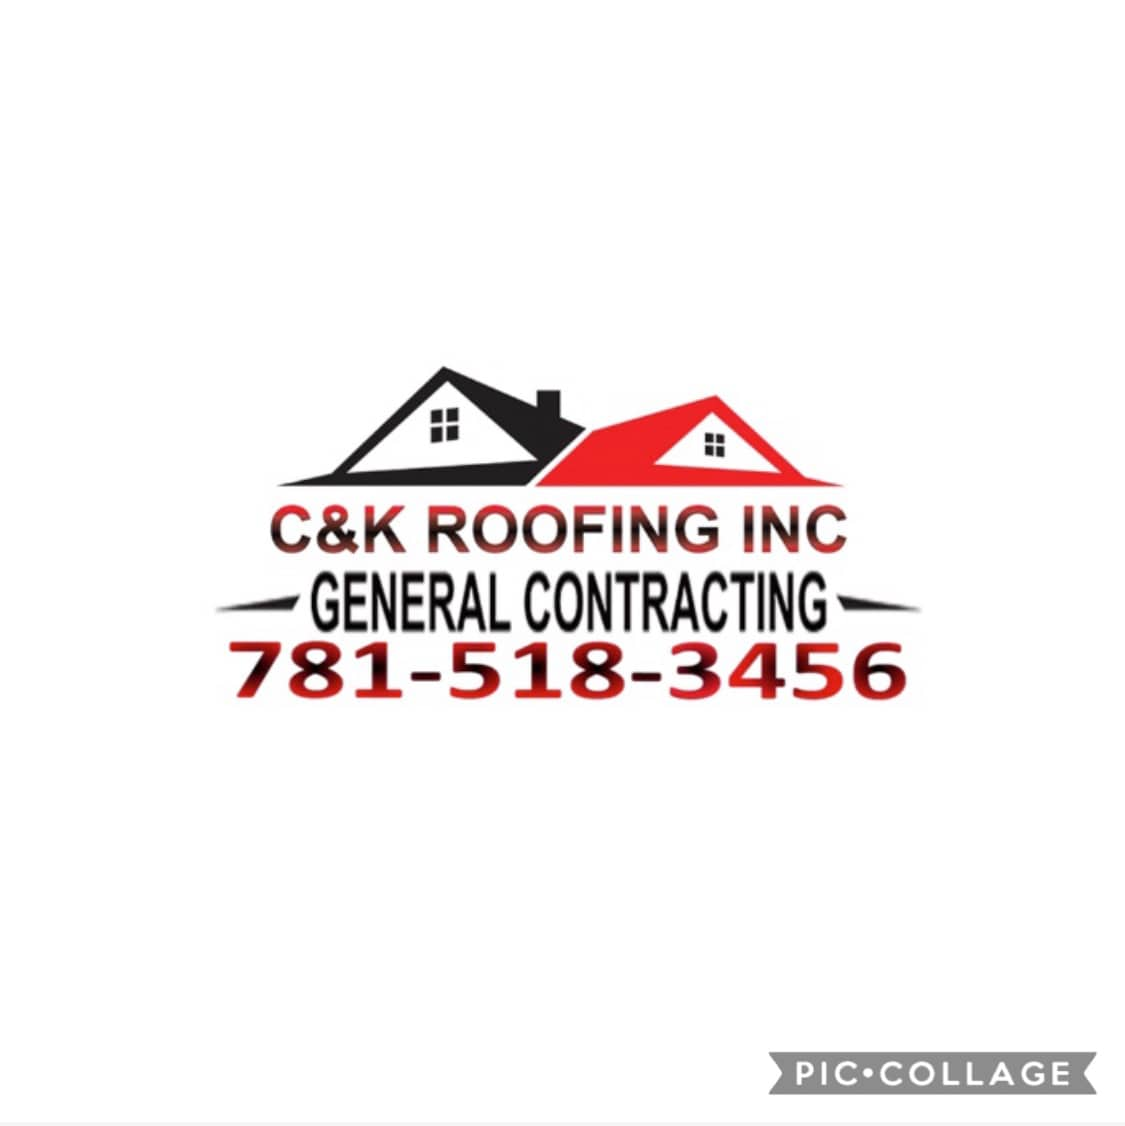 C&K Roofing Inc